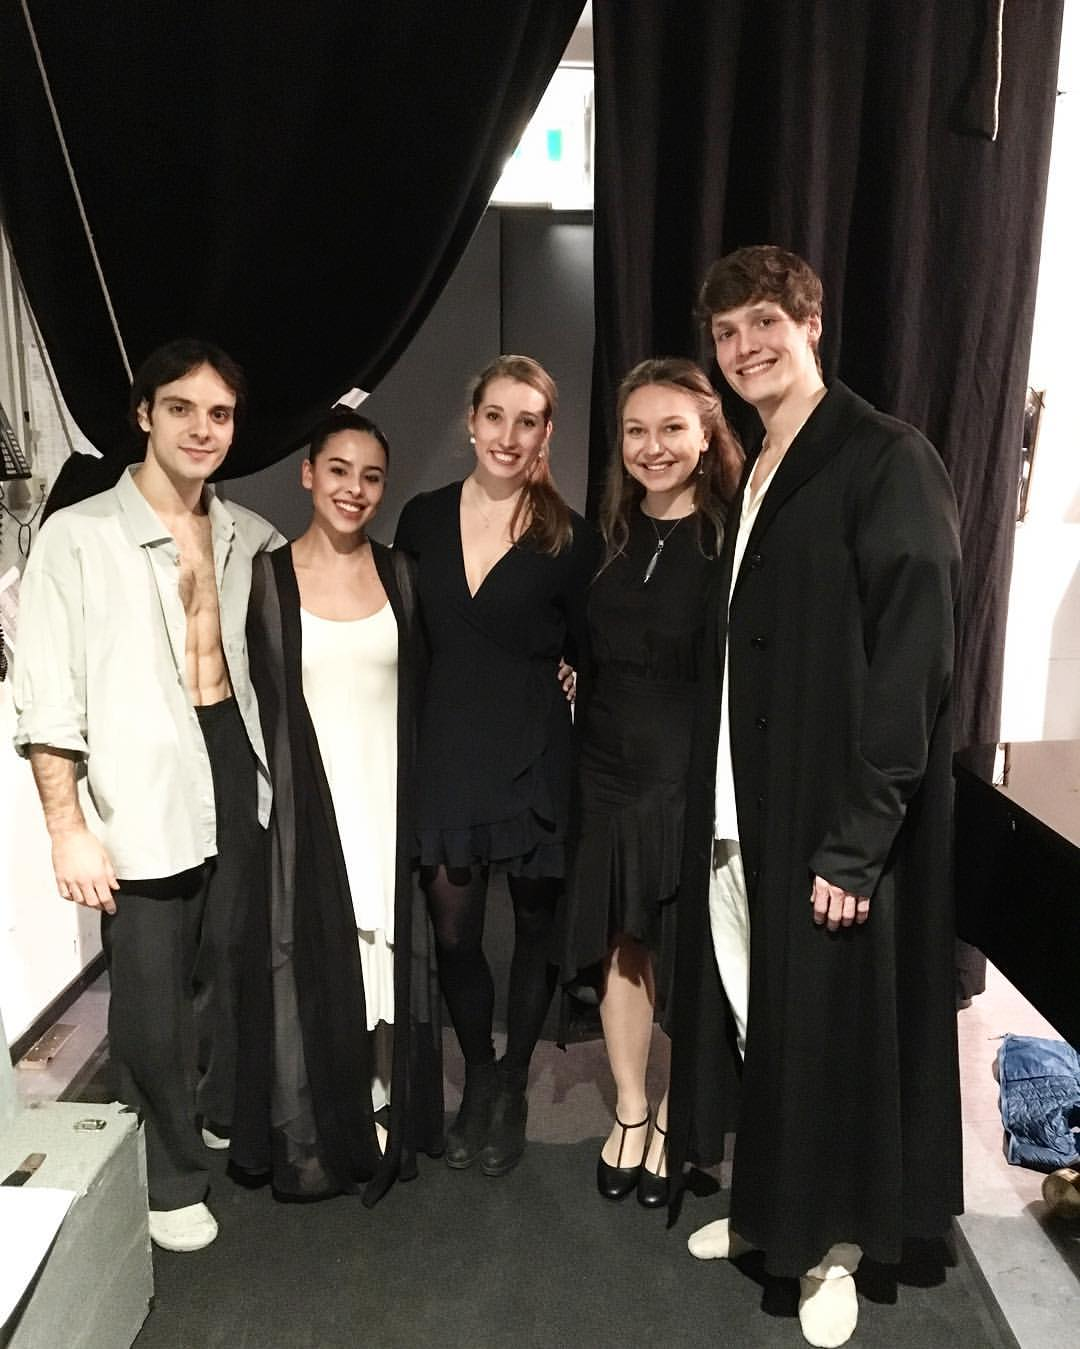 14th March 2017, following the second performance. From the left: Nicolas Glässman, Winnie Dias, Hayley Page, Kirsten Milenko, Florian Pohl.